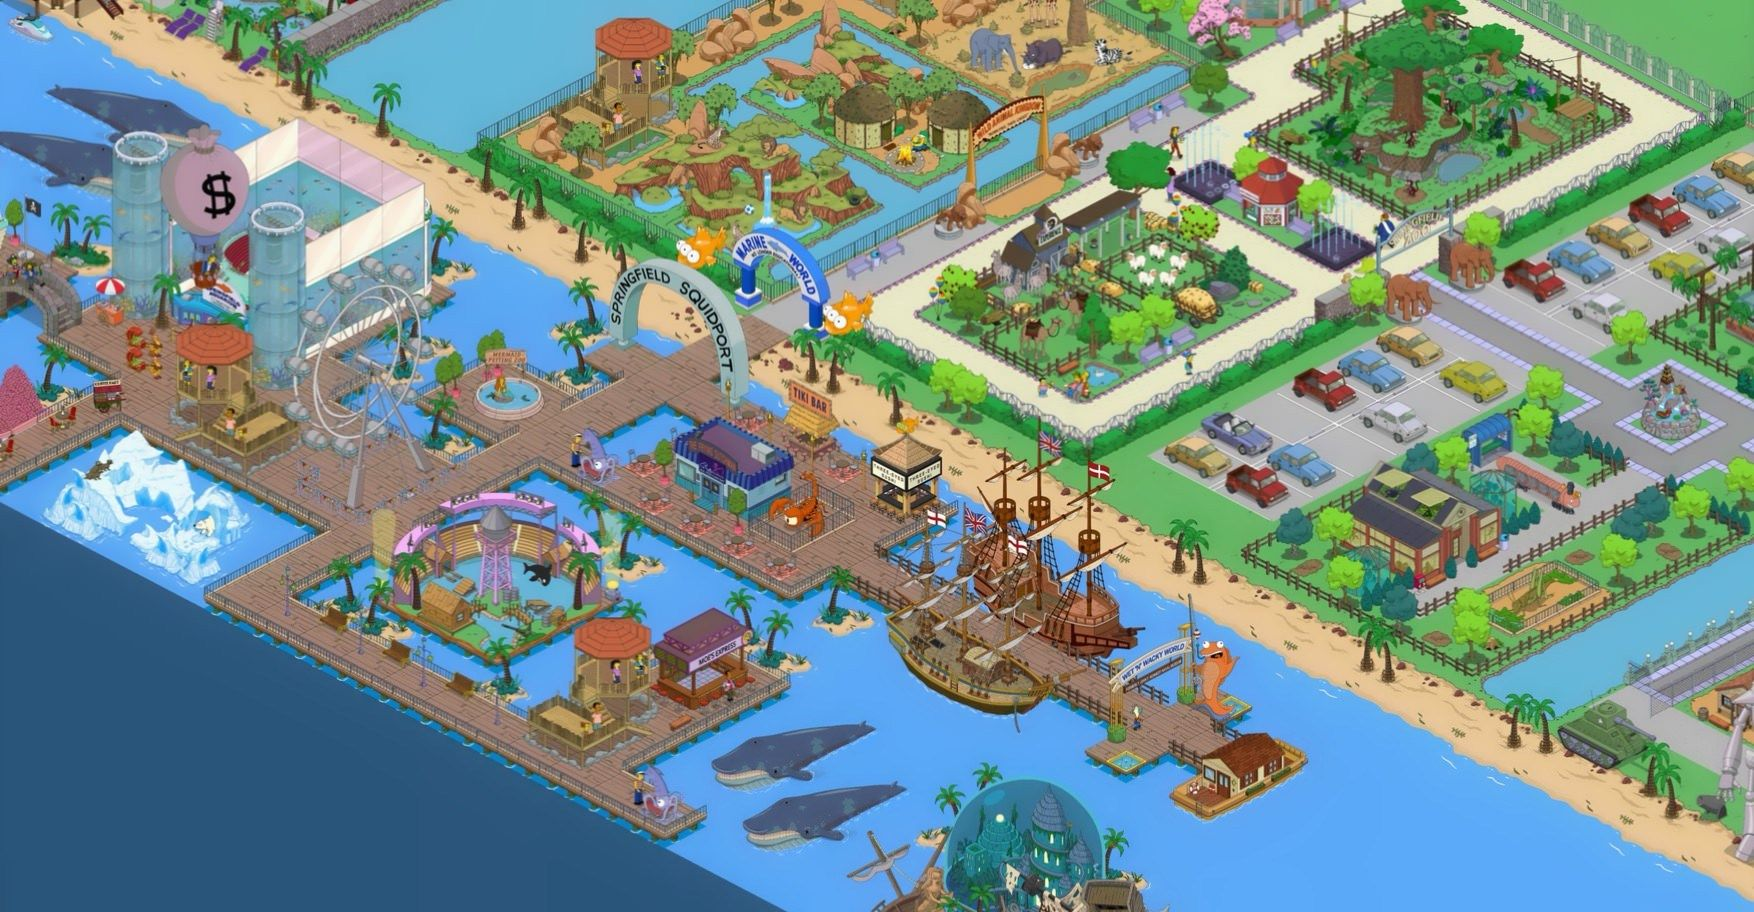 Simpsons Tapped Out - Mobile Games